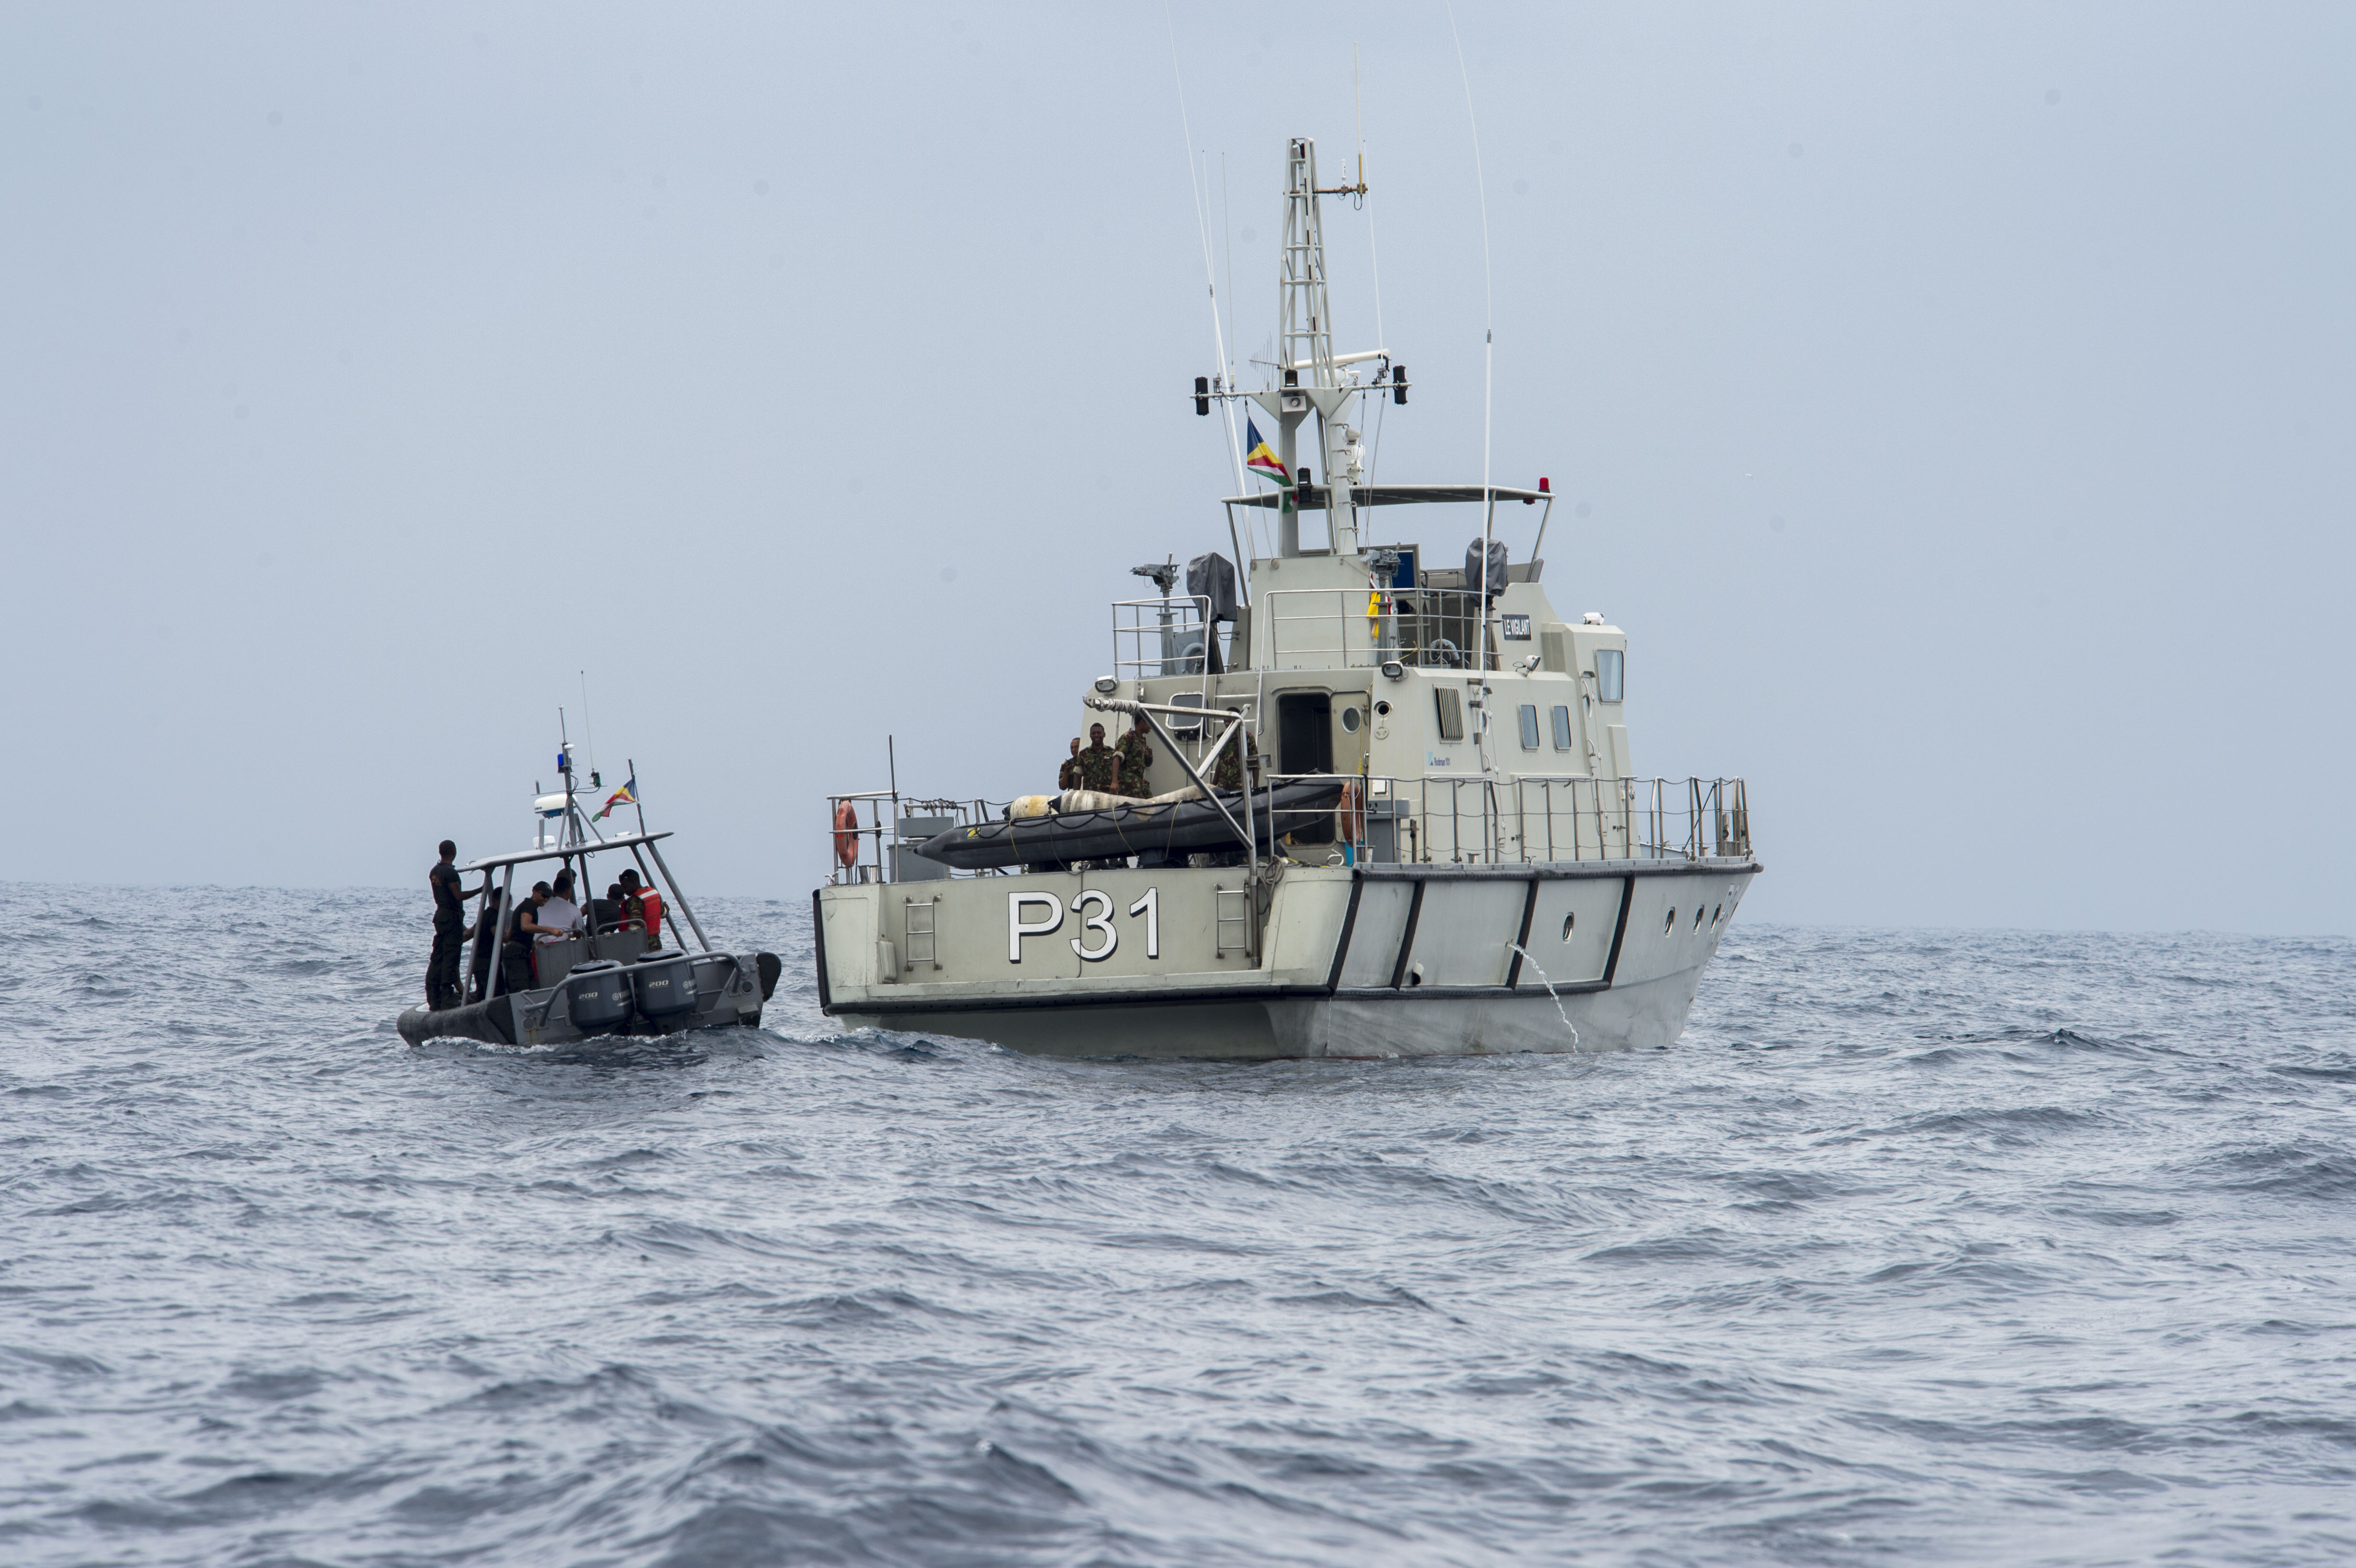 Maritime forces from Seychelles pilot a rigid hull inflatable boat (RHIB) filled with Mauritian Coast Guardsmen to a Seychellois patrol boat to conduct a visit, board search and seizure exercise during exercise Cutlass Express 2016 on Feb 2. US Navy photo.